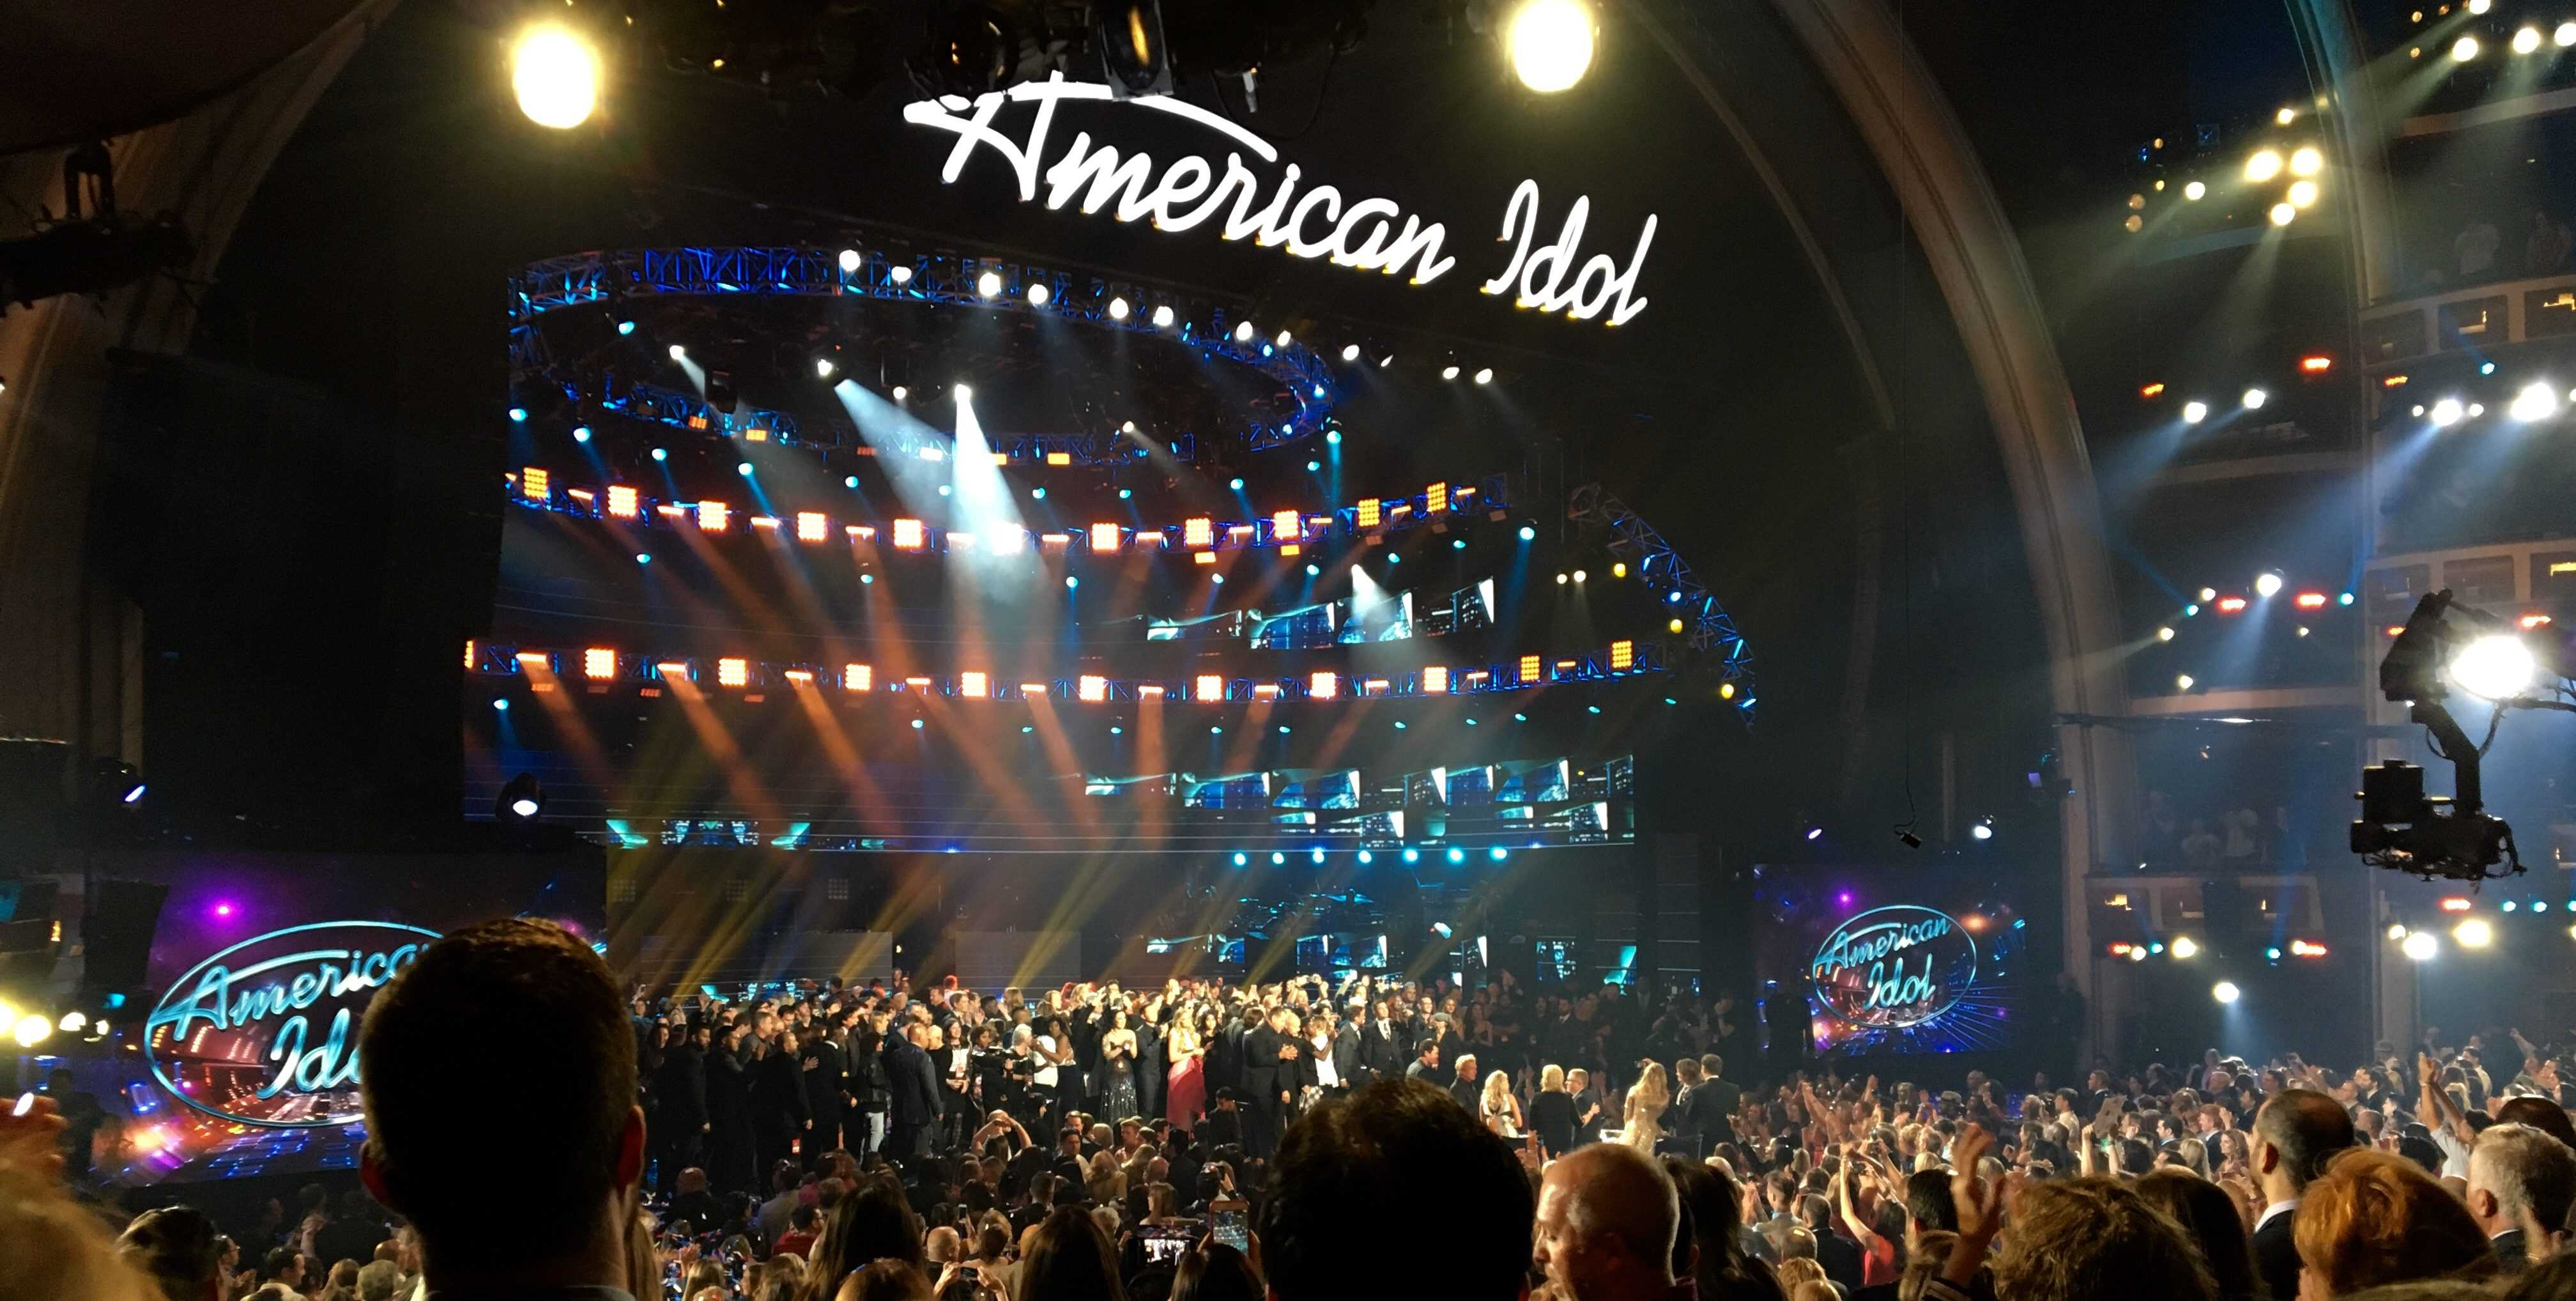 The crowd in The Dolby Theatre cheers for Trent Harmon, who won the 15th season of